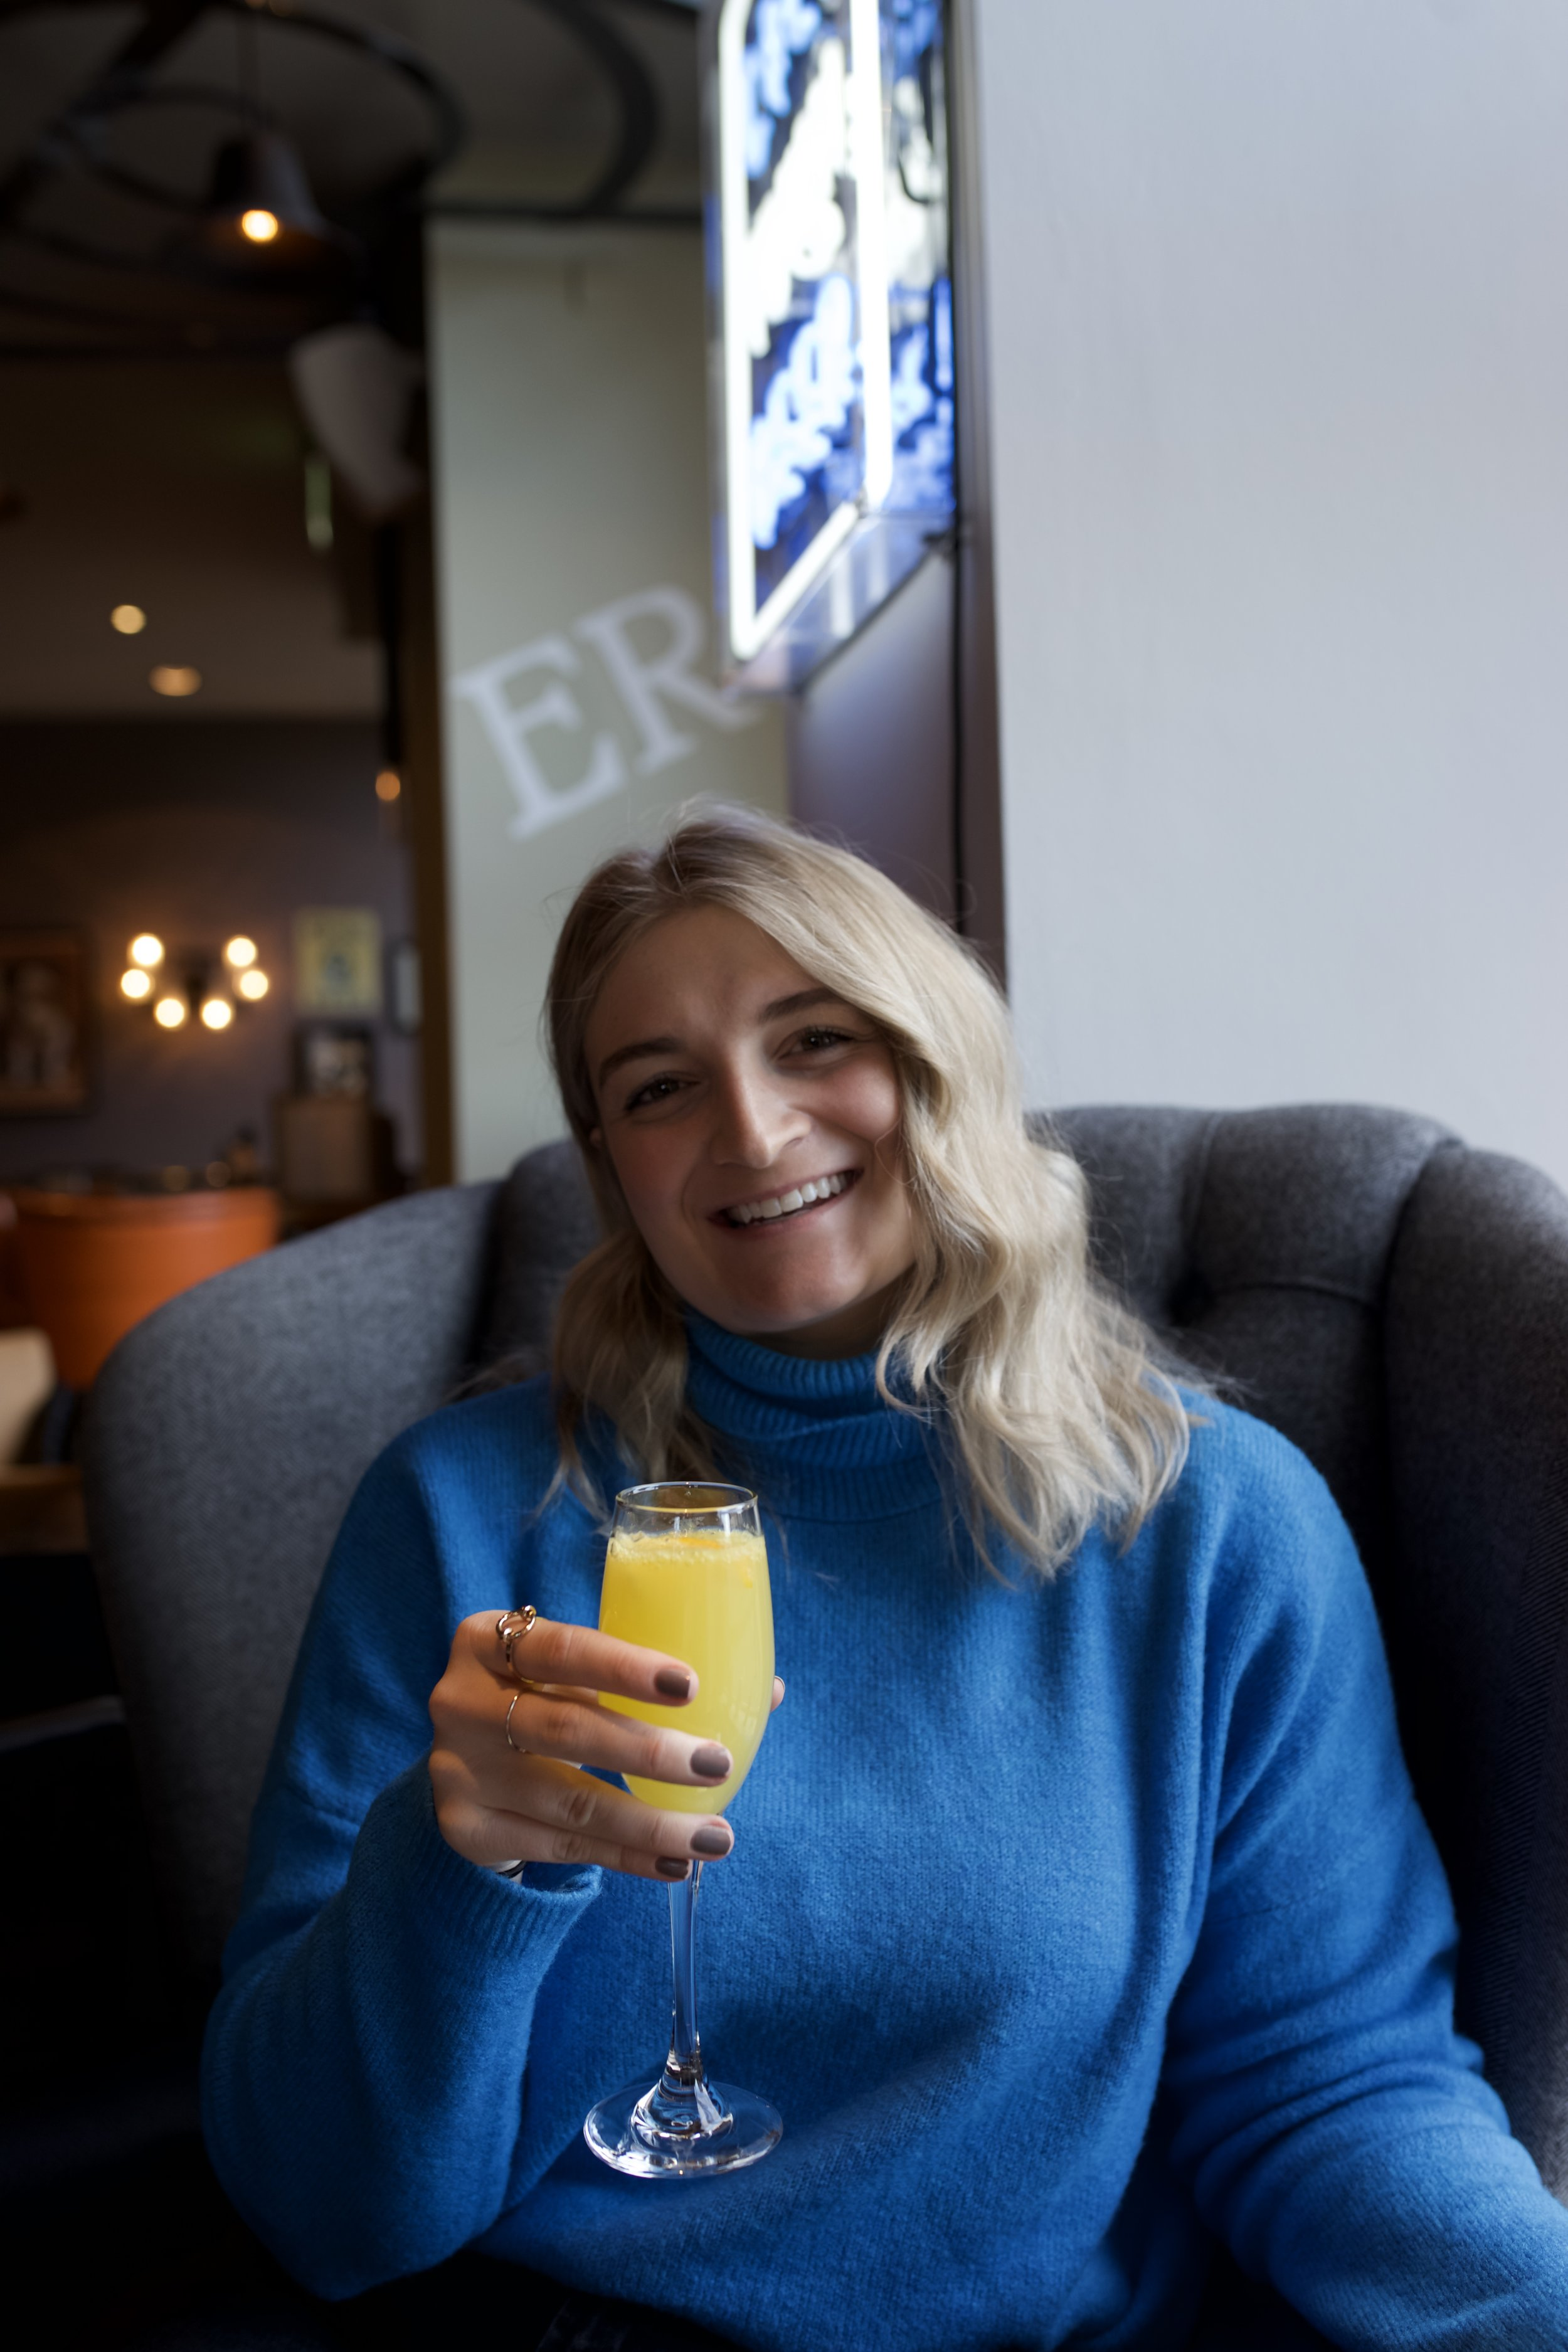 Where to drink in Edinburgh. - Pubs not your scene? The cocktail bars are incredible.